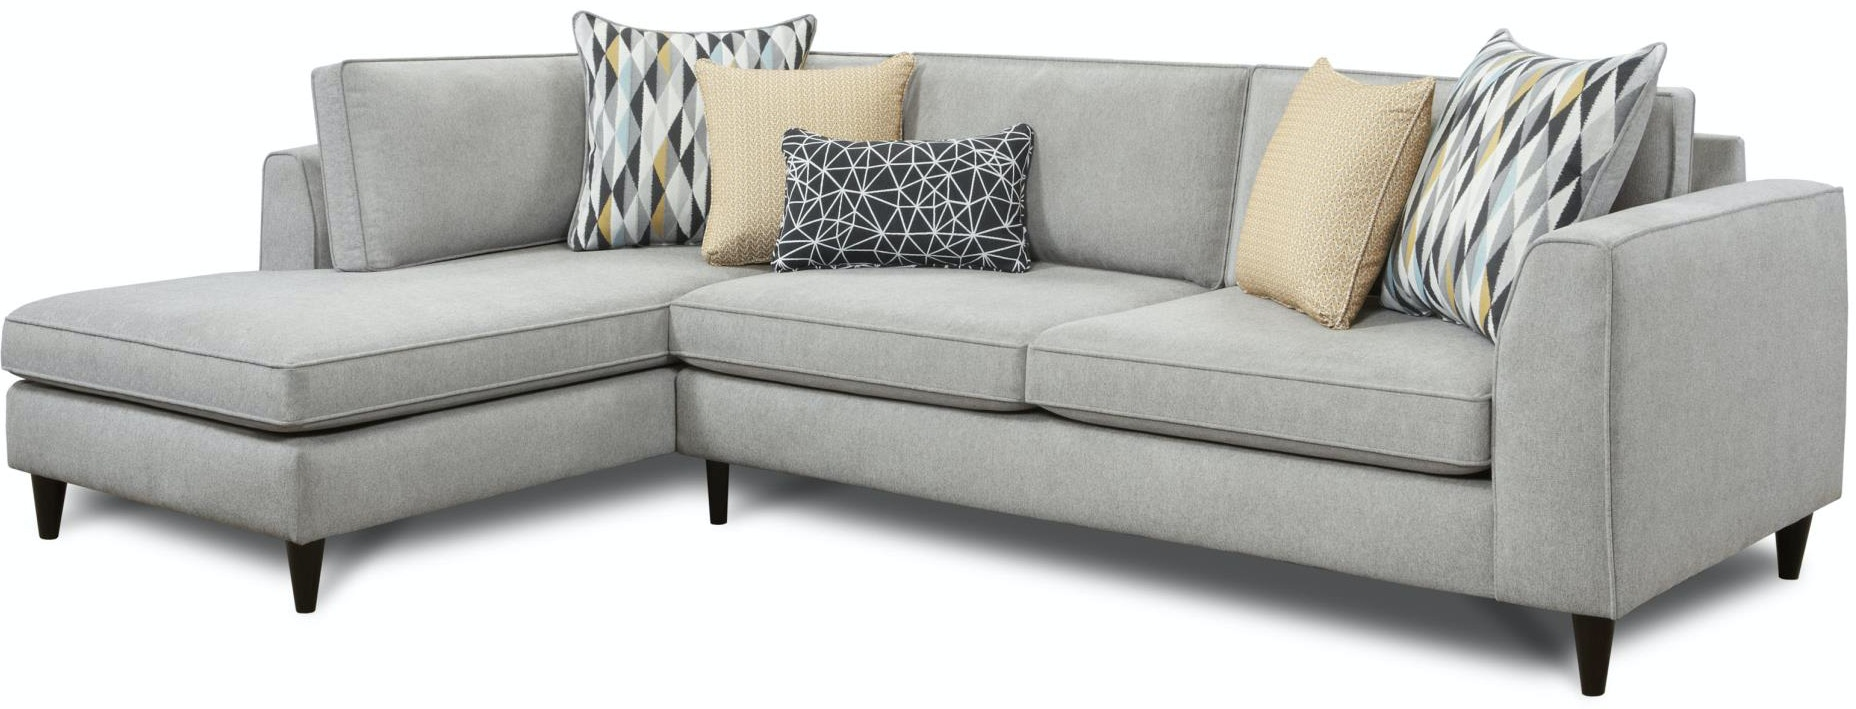 Fusion Living Room Popstitch Pebble Left Chaise Sectional 636357  ~ Sofa With Chaise Sectional